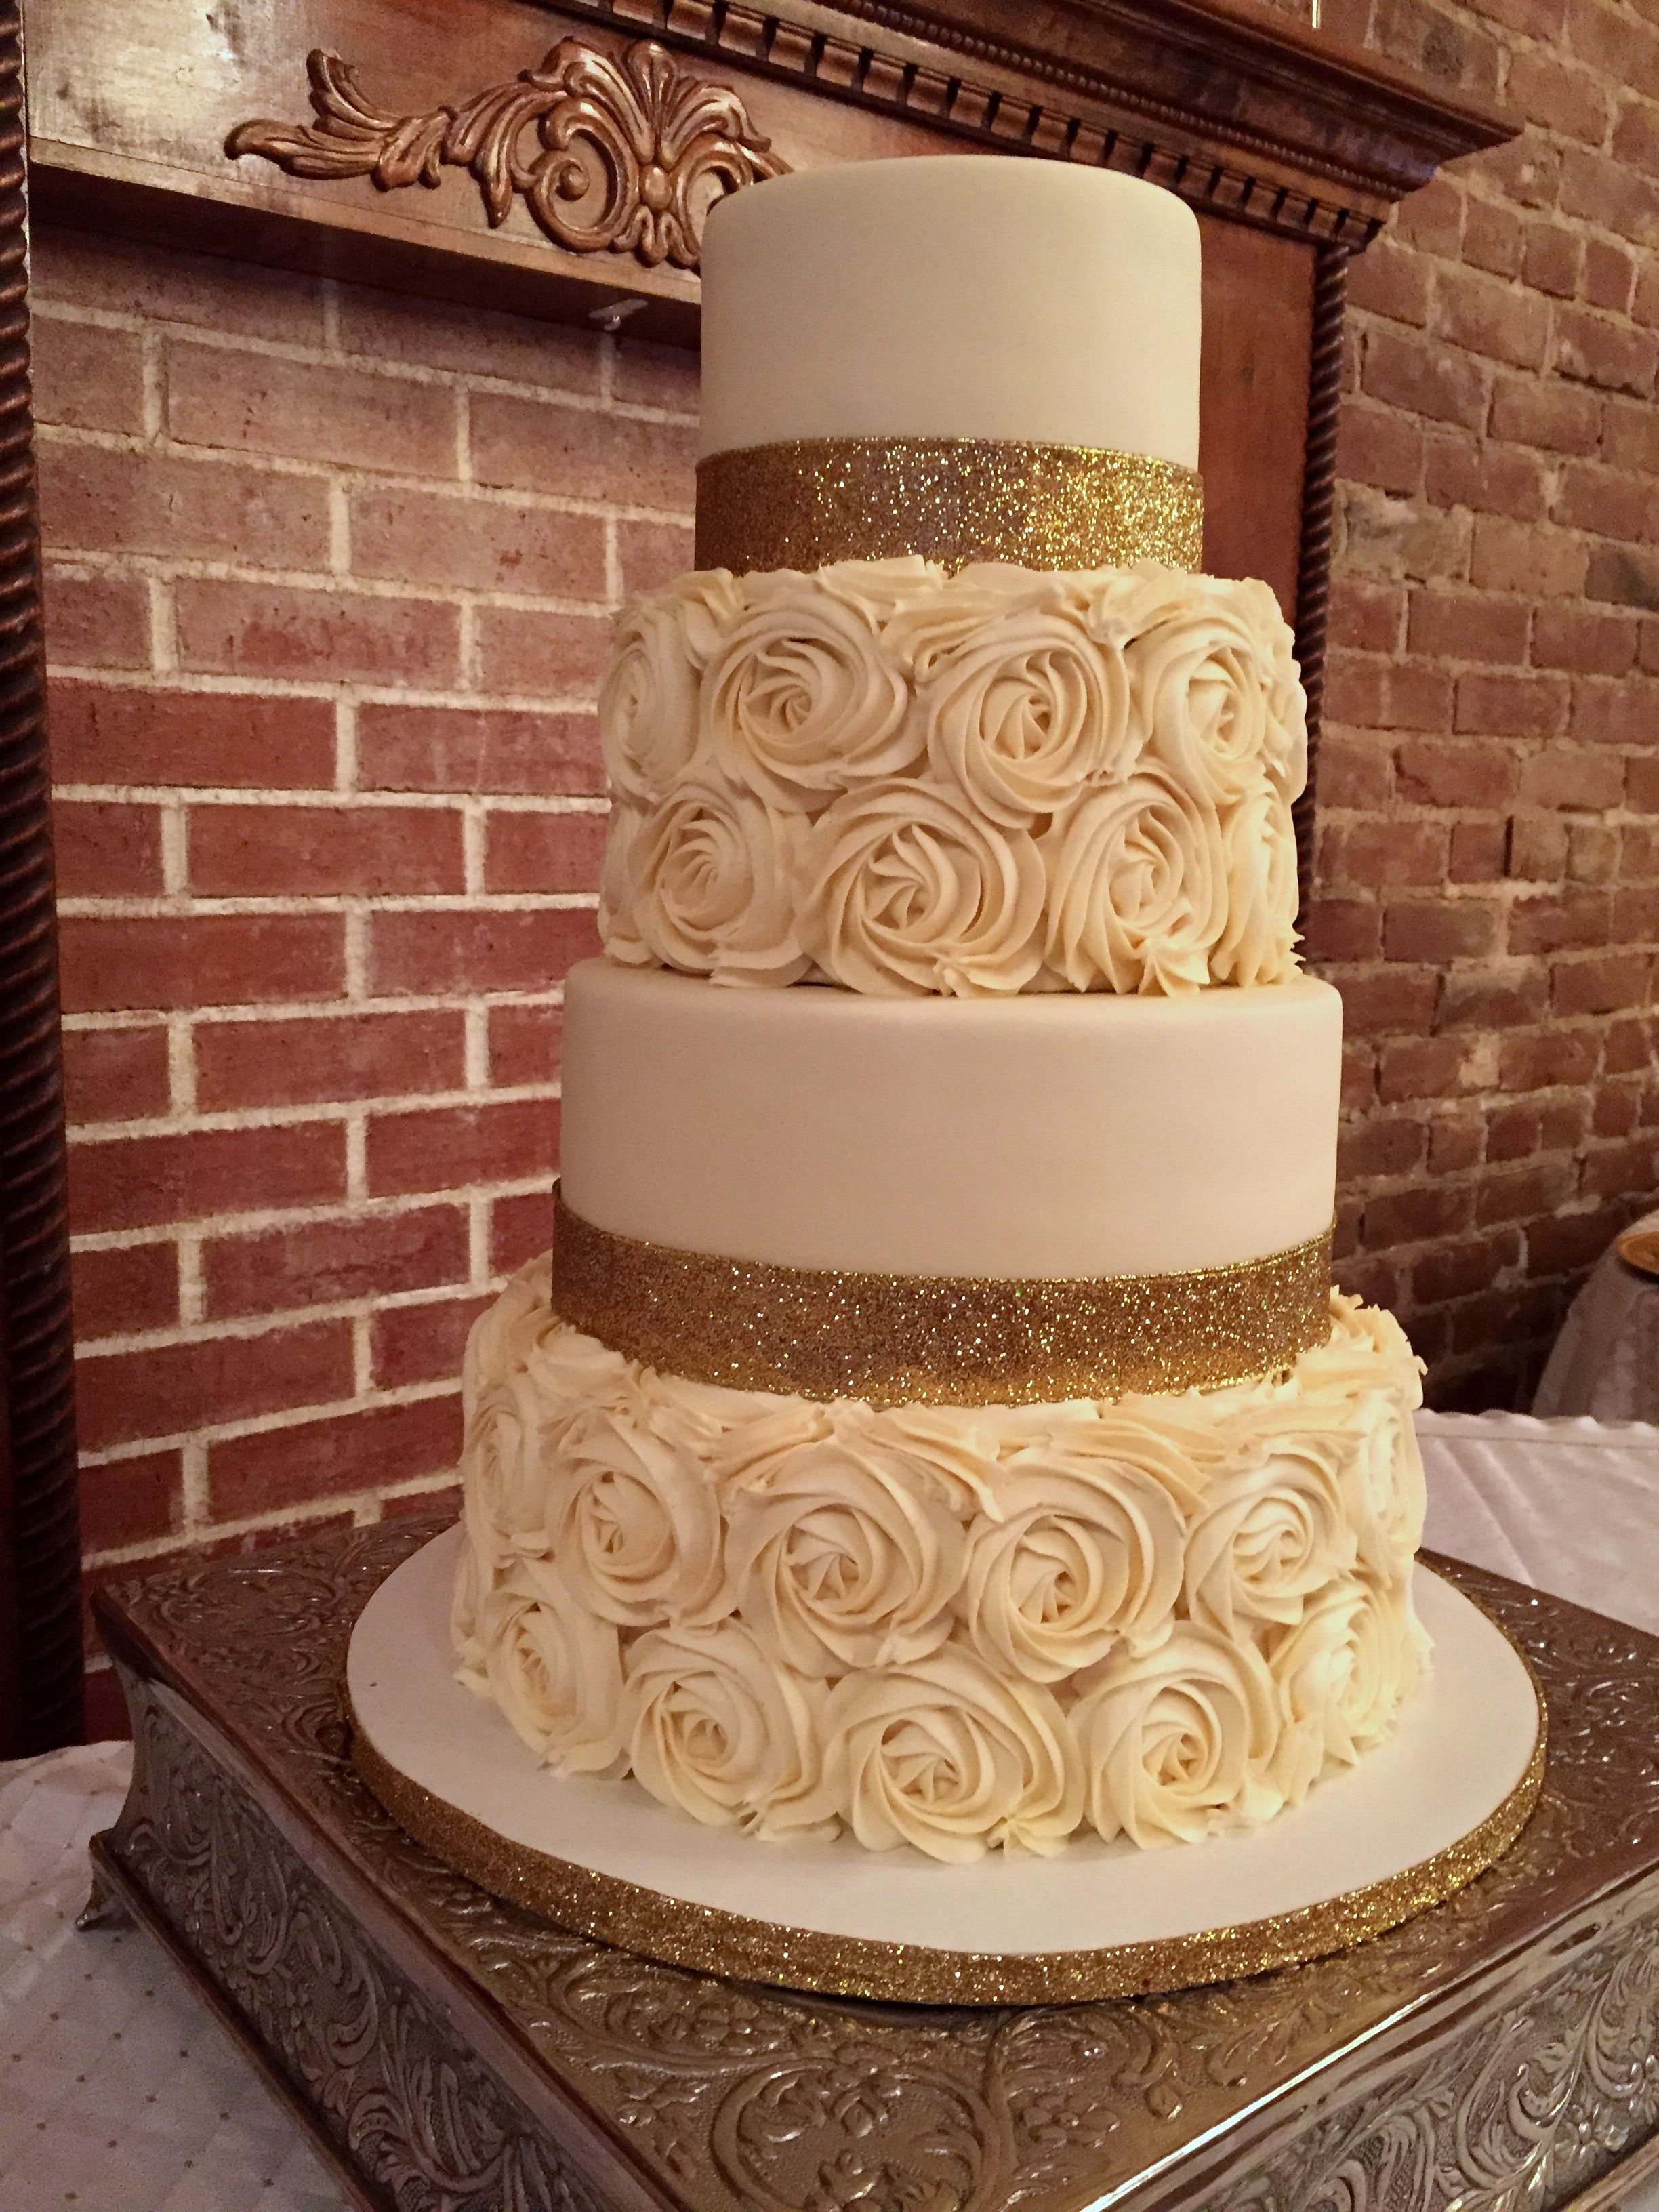 Wedding Cake Ideas Not Cake - Rosette wedding cake made with cake couture fondant and buttercream icing